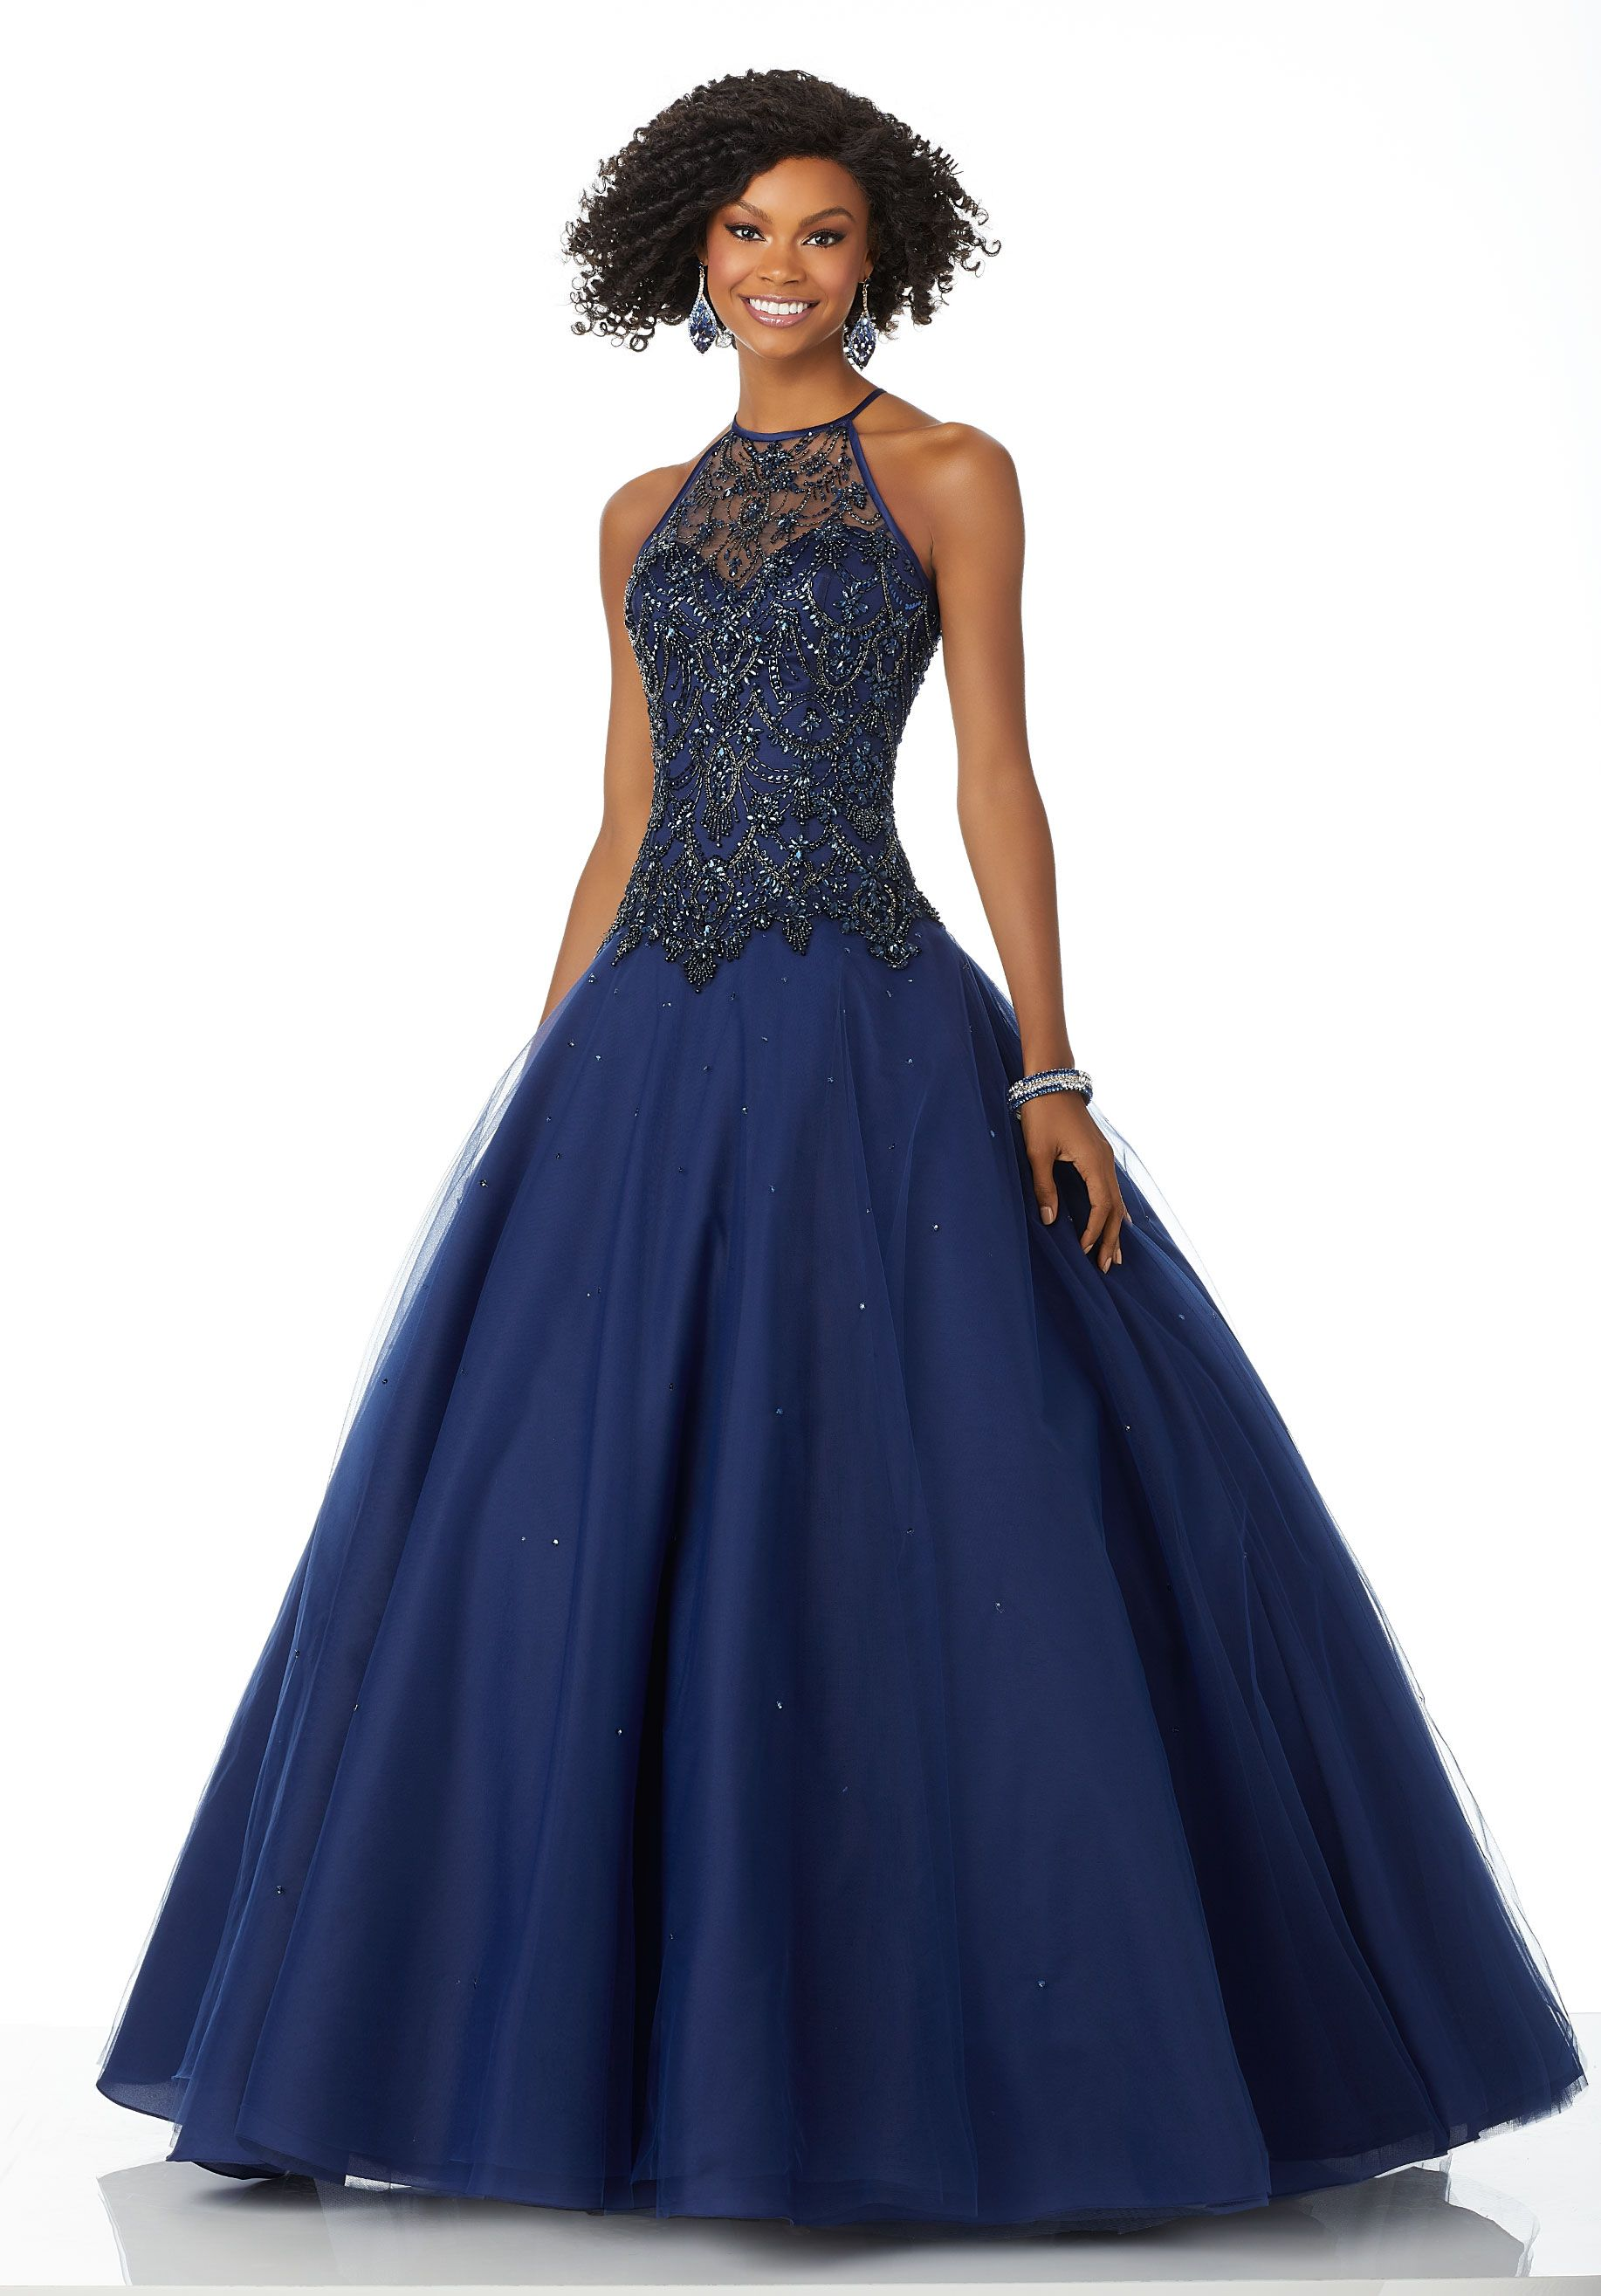 Dropped Waist Tulle Ballgown Featuring a Tonal Beaded